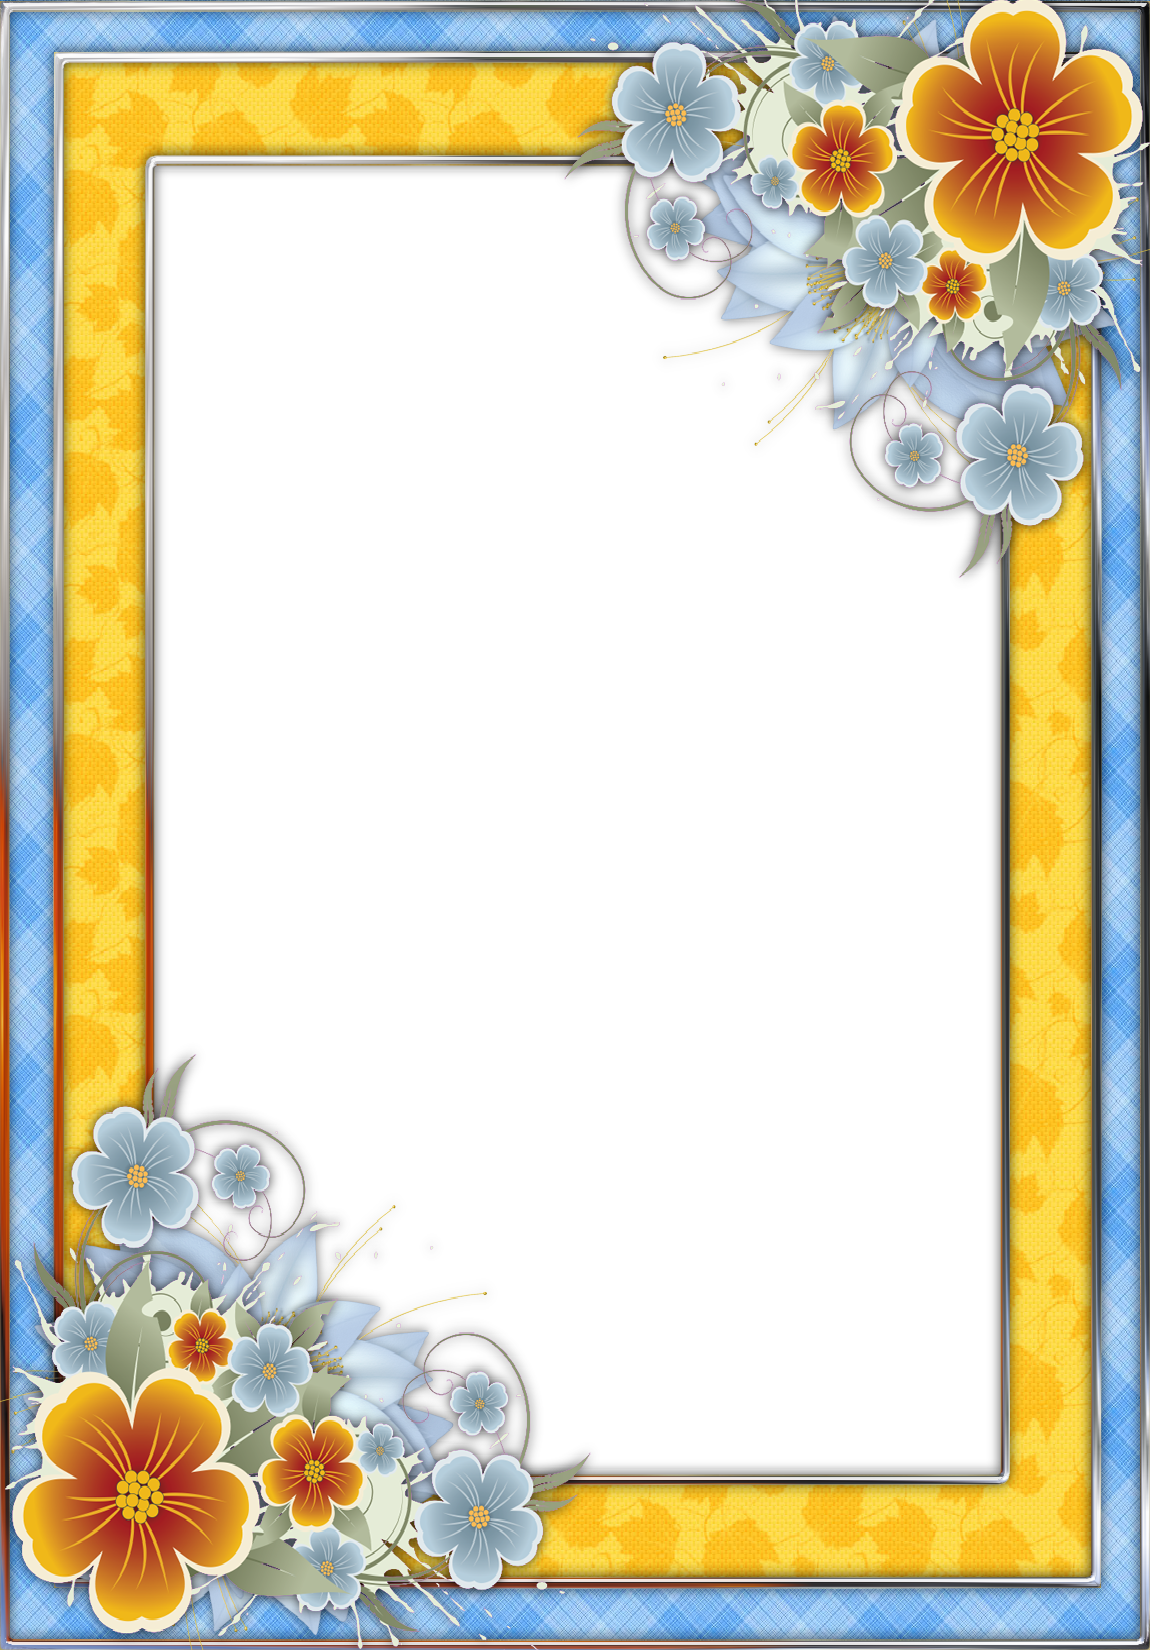 Blue and yellow flower clipart image download Blue and Yellow Transparent PNG Frame with Flowers | Gallery ... image download